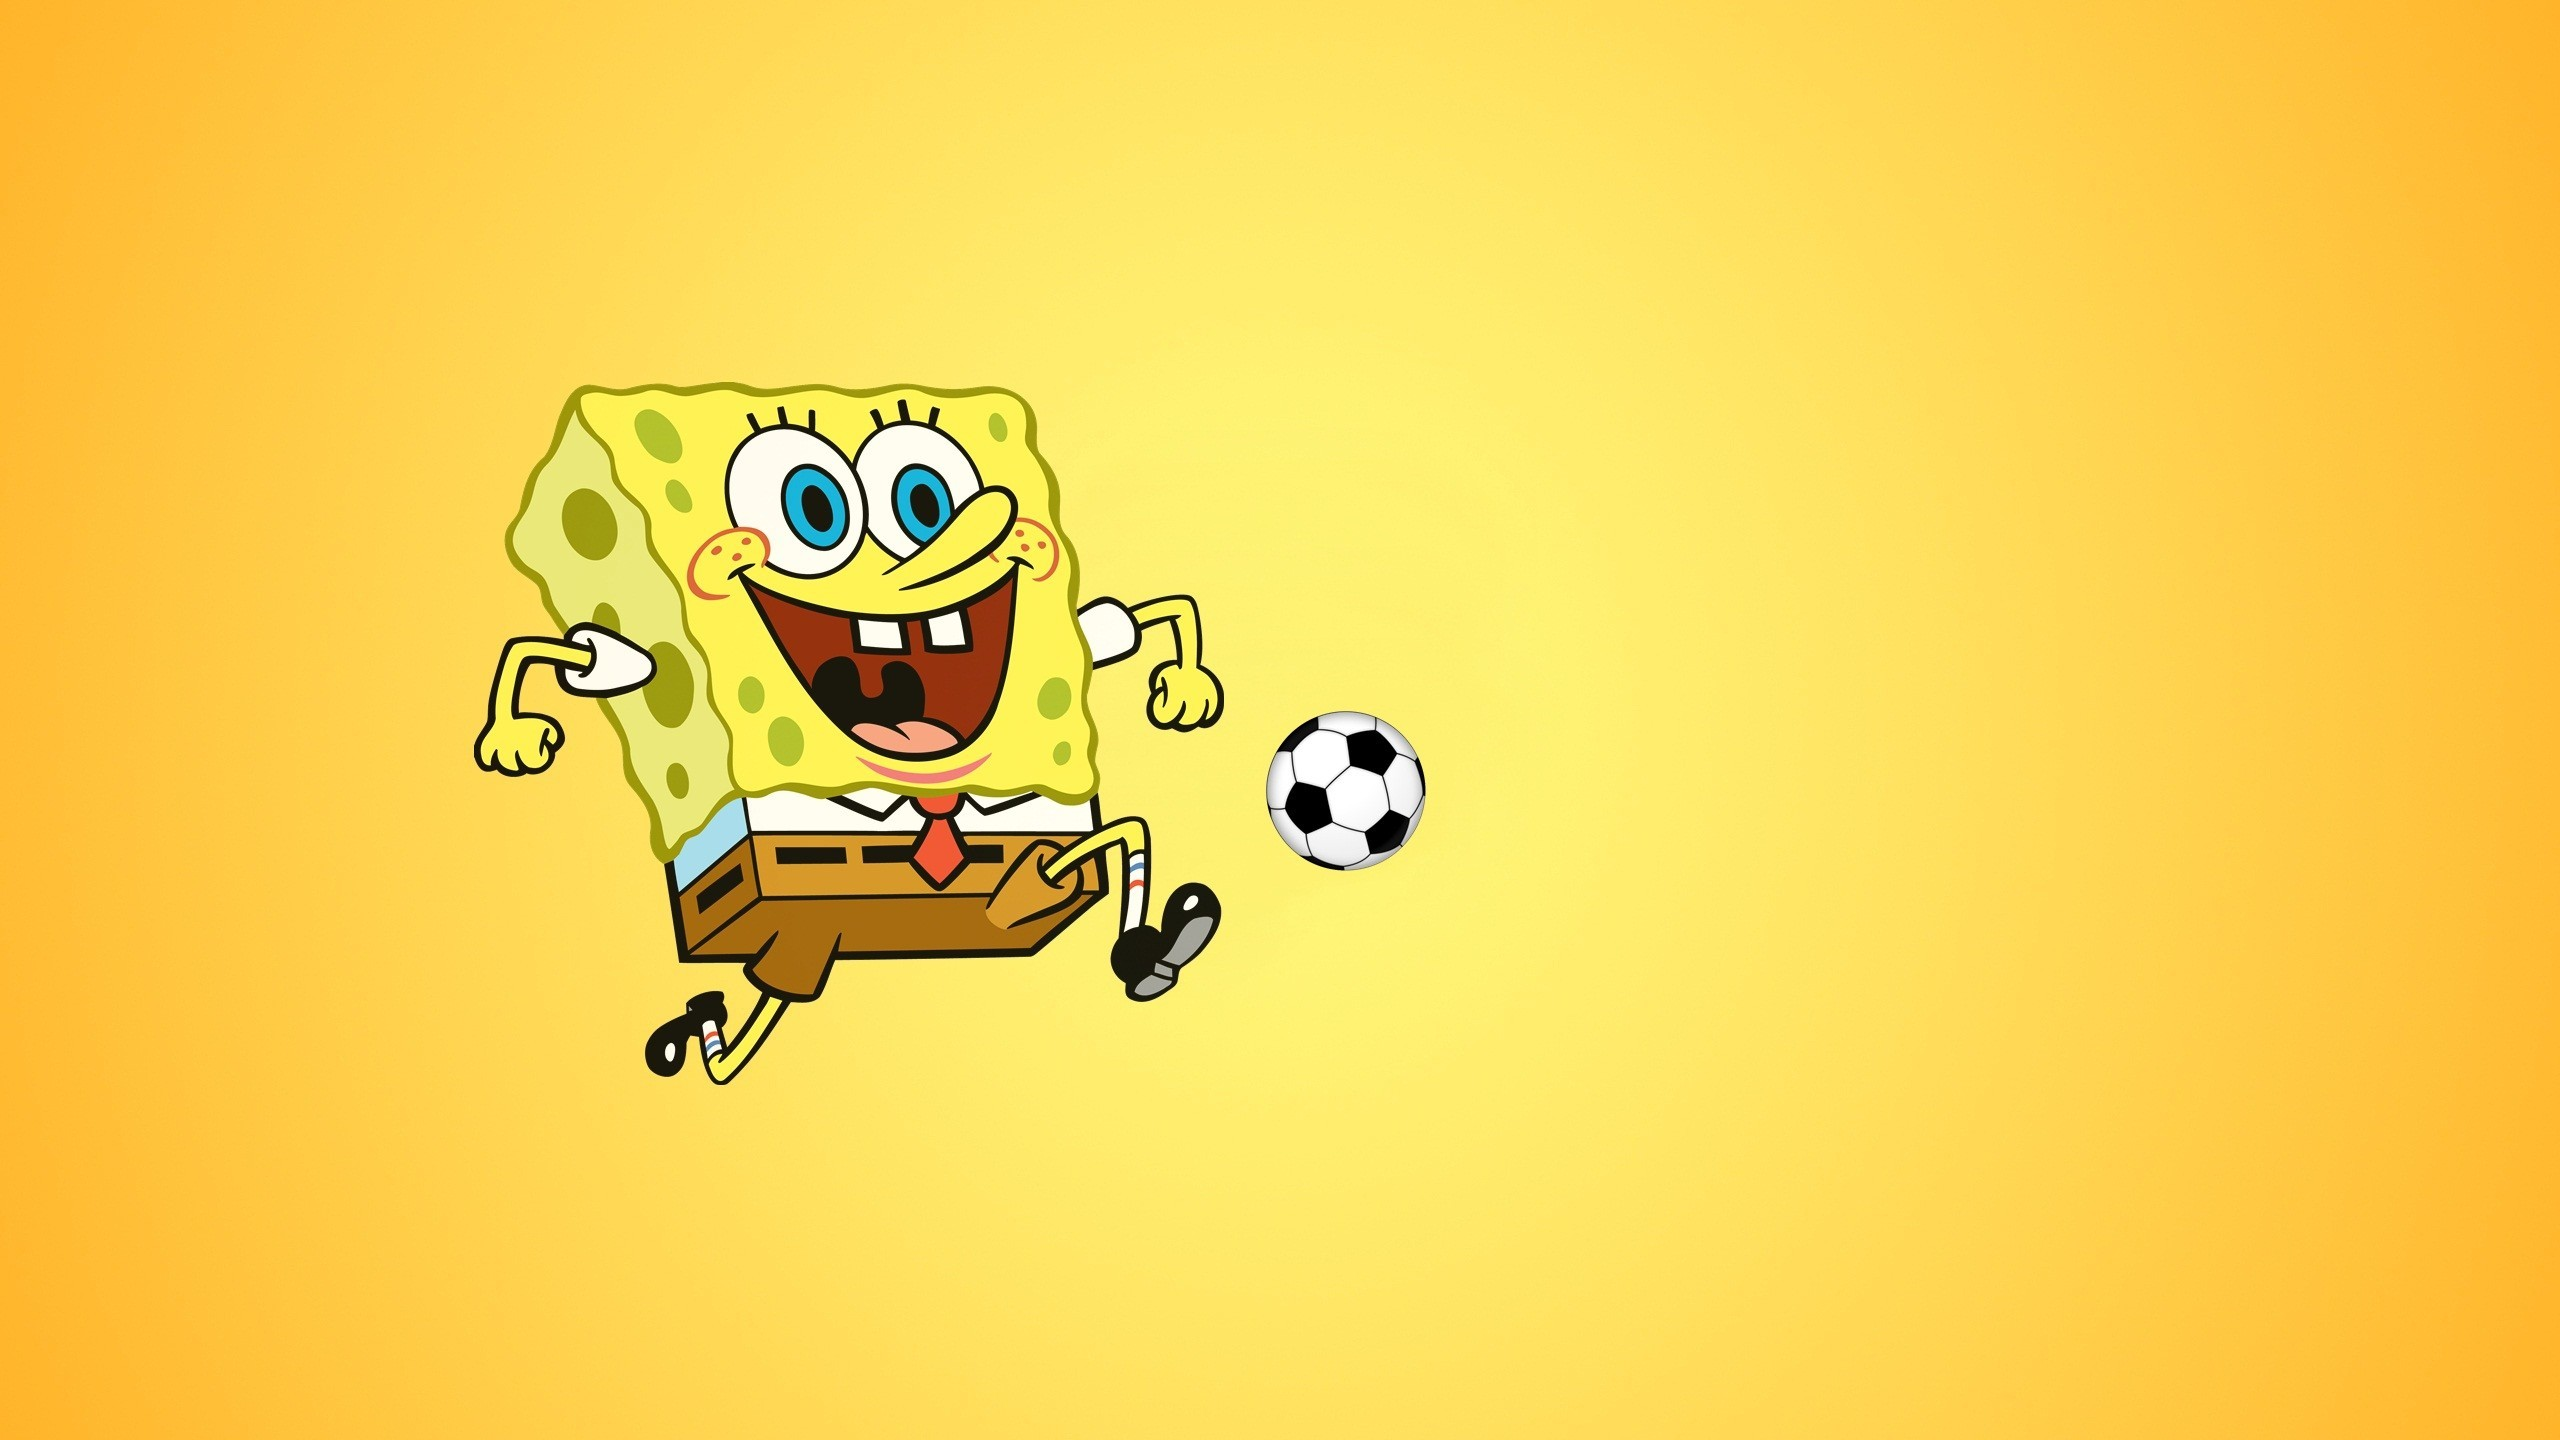 Res: 2560x1440, 1920x1080 spongebob wallpaper for laptop awesome spongebob wallpaper 39842  40768 hd wallpapers - A Wallpaper.Com